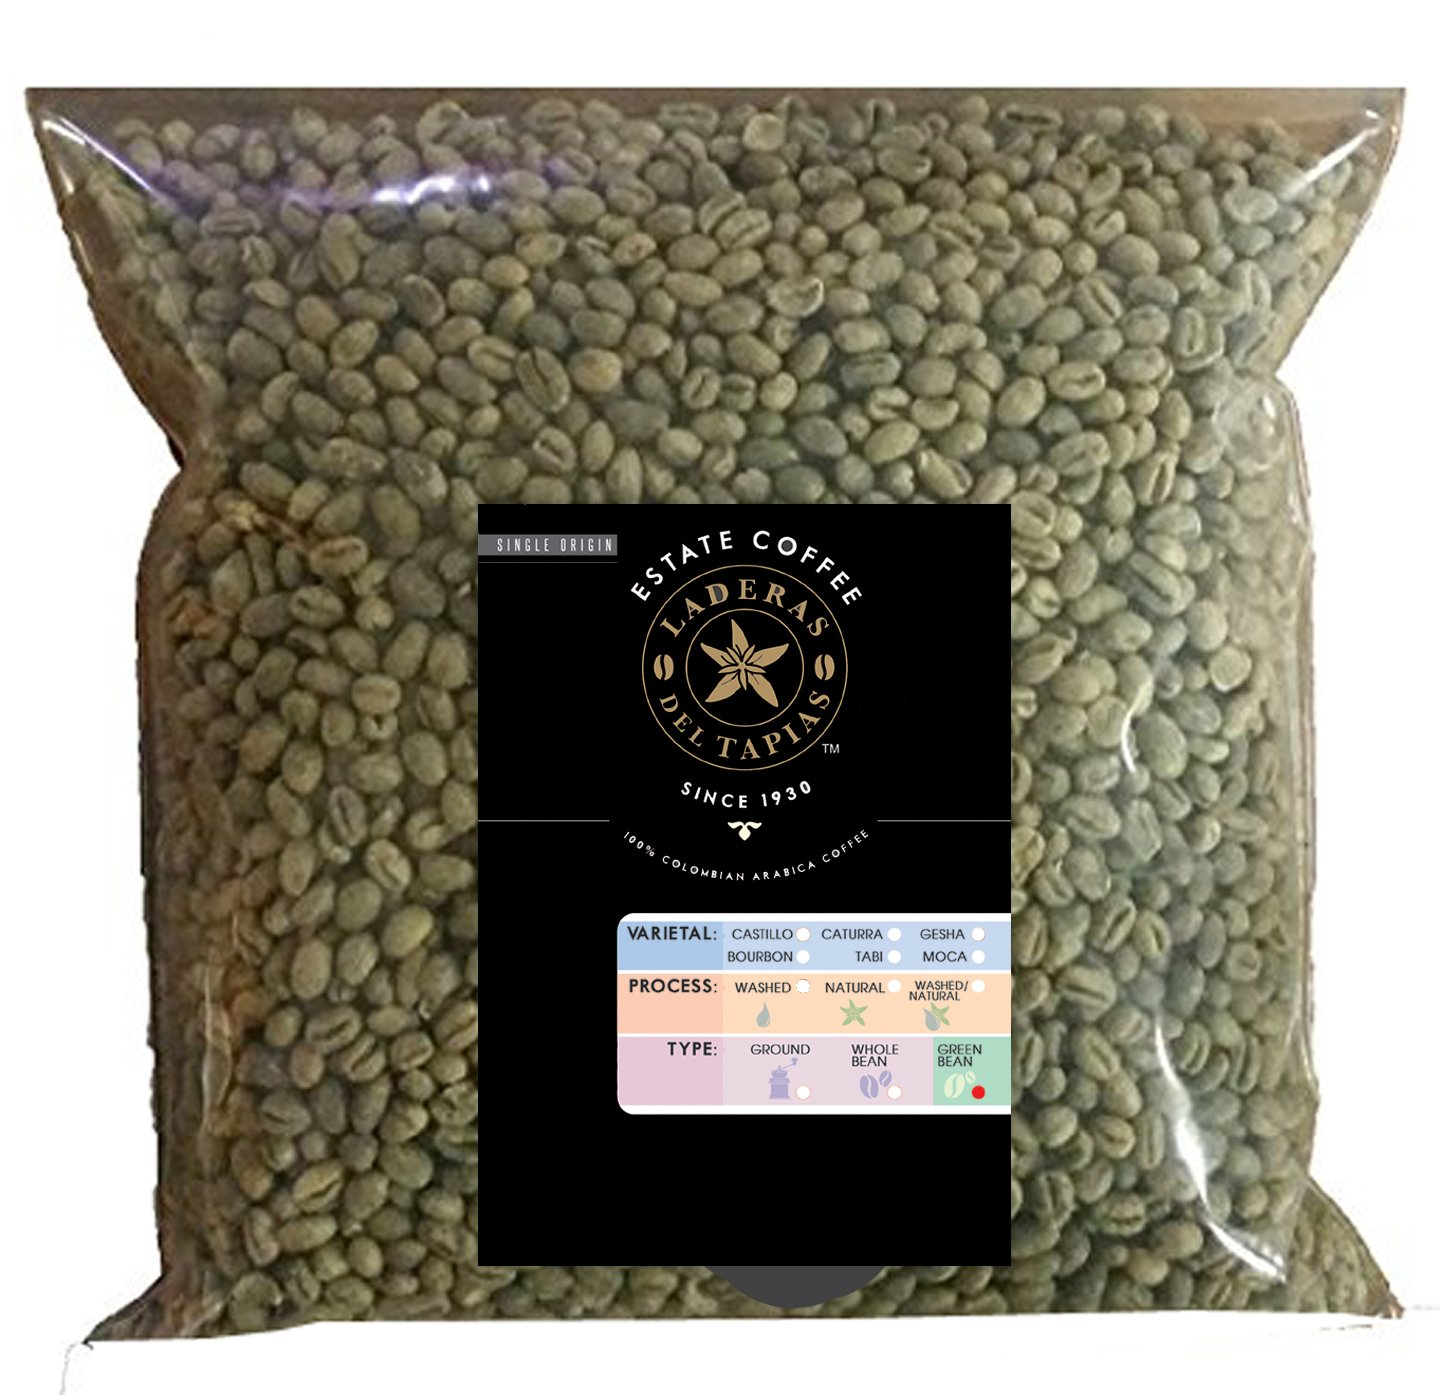 5 lb Caturra AAA Unroasted Green Coffee Beans, Specialty Grade, (Caturra AAA Washed - Laderas Del Tapias AAA, (Caturra AAA Washed - Laderas Del Tapias AAA, 5 lb)